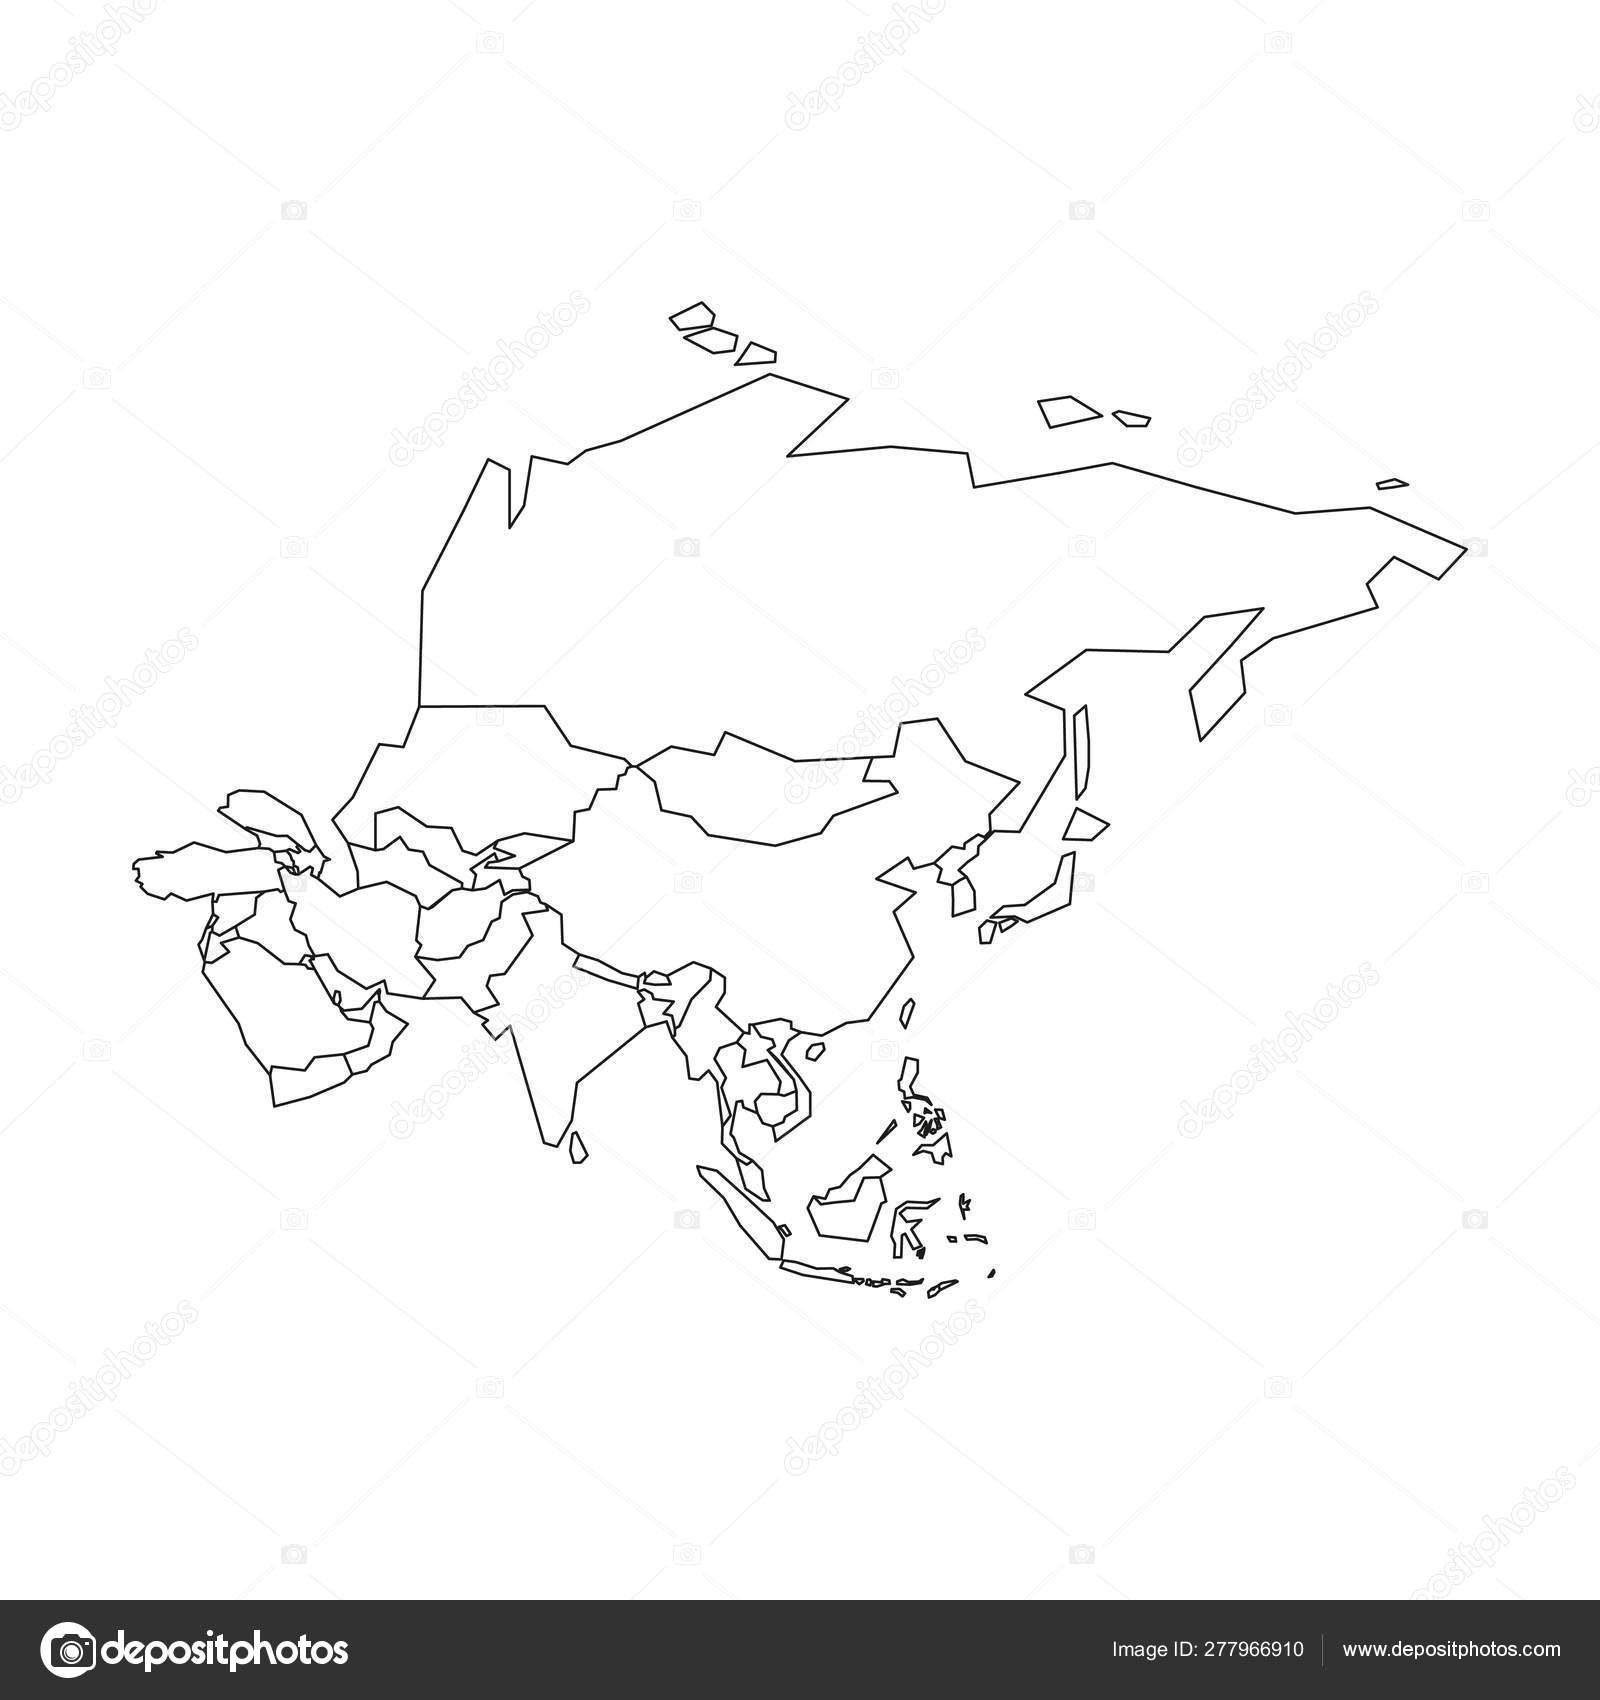 Outline Map Of Asia.Political Map Of Asia Simplified Black Wireframe Outline